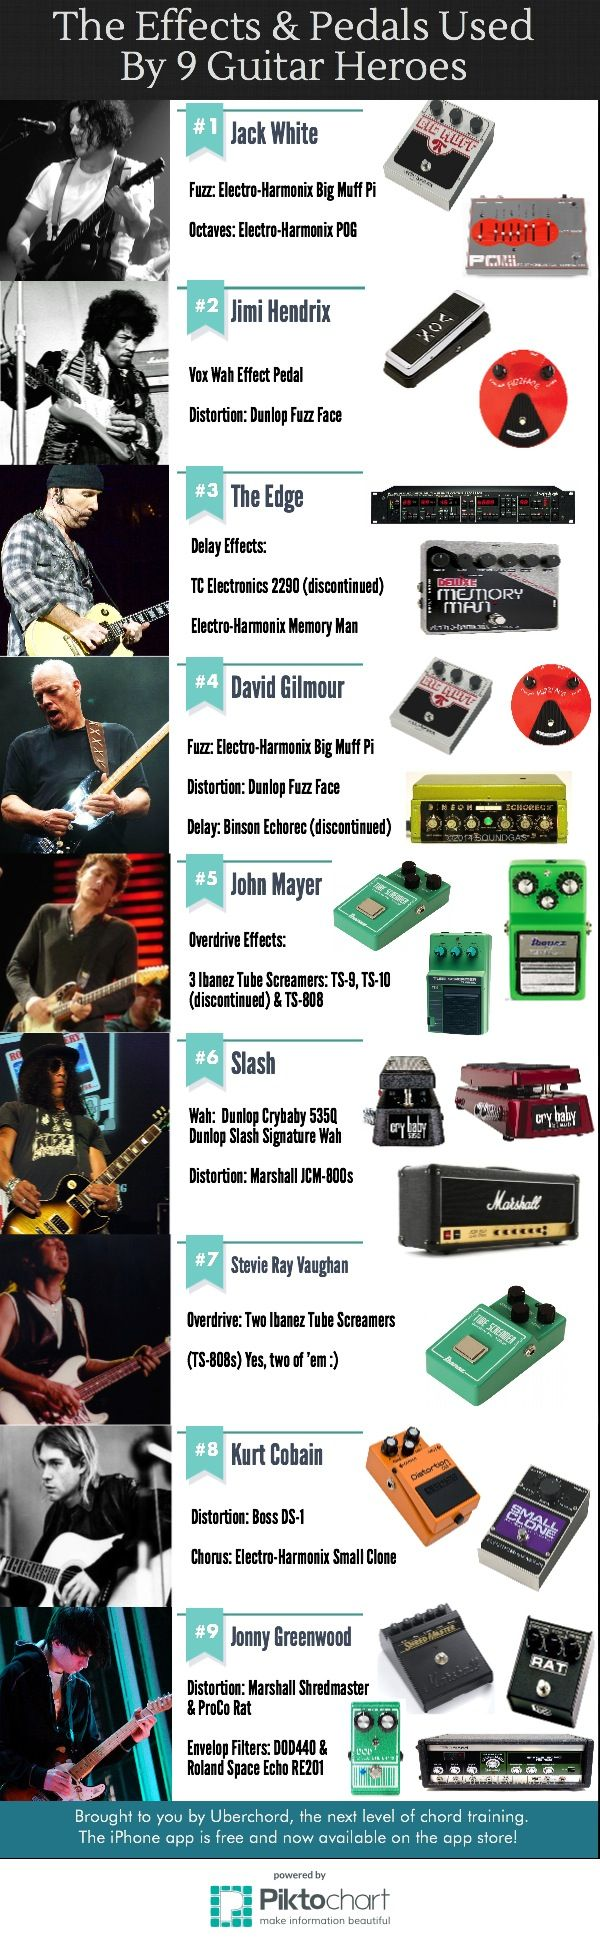 Guitar Effects Used By Nine Pros from #Slash to #JohnMayer | @Piktochart #Infographic